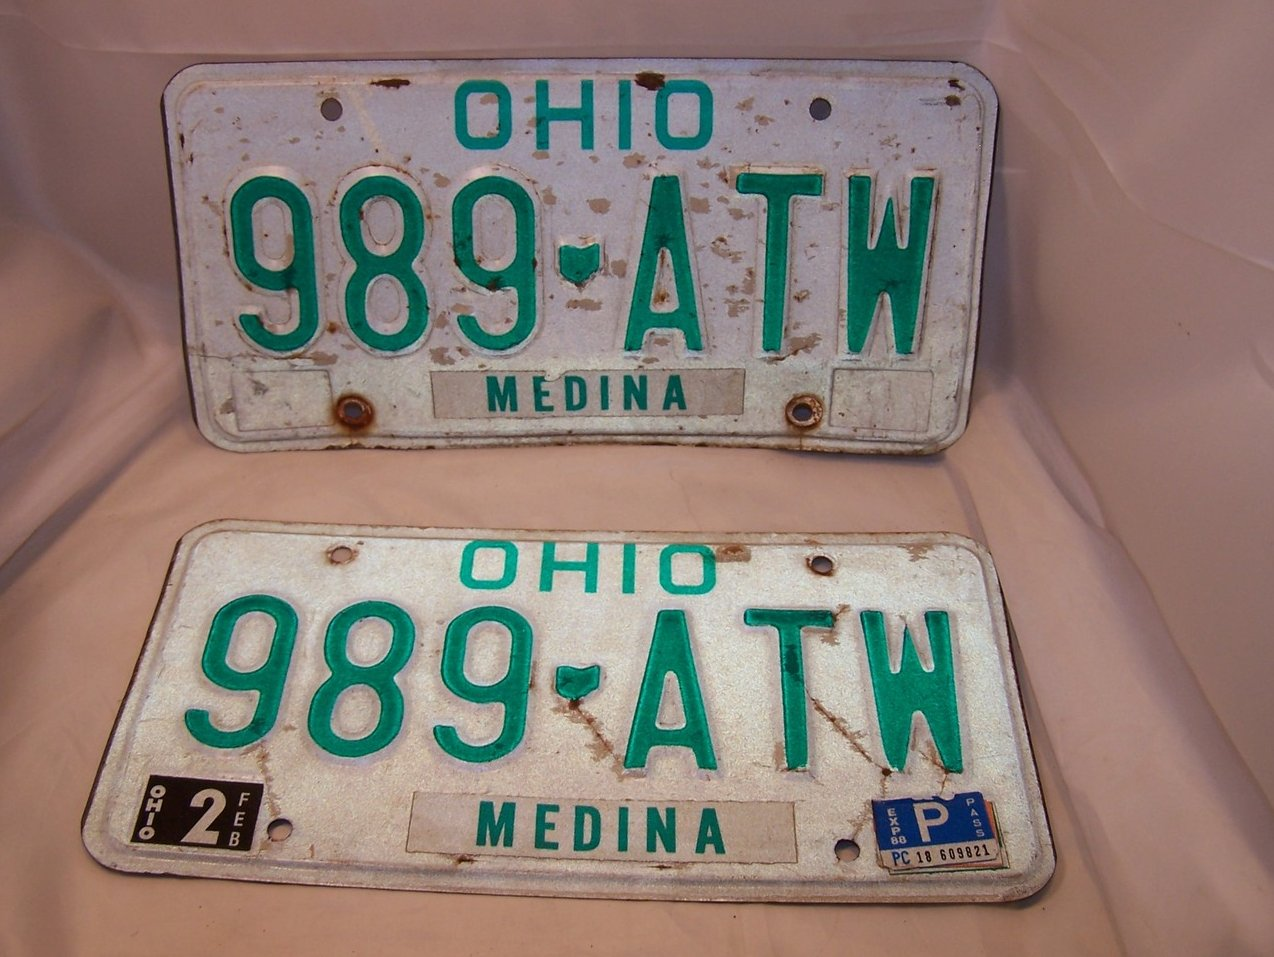 989 ATW Double License Plate Set, Ohio, 23 Years Old